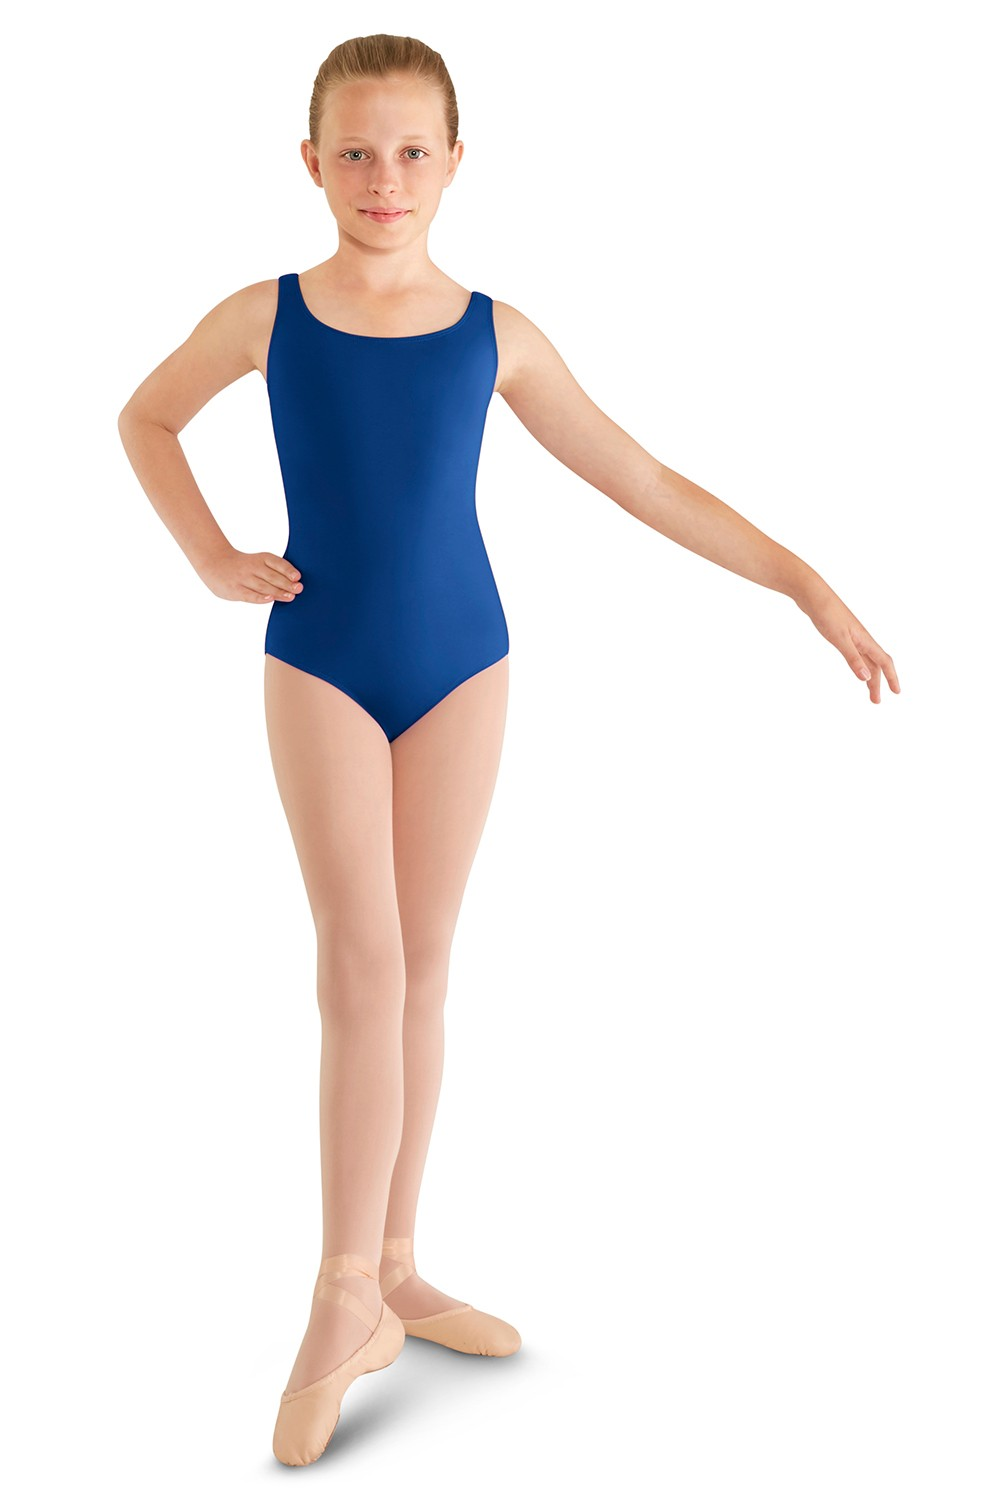 Body De Alças Grossas Children's Dance Leotards